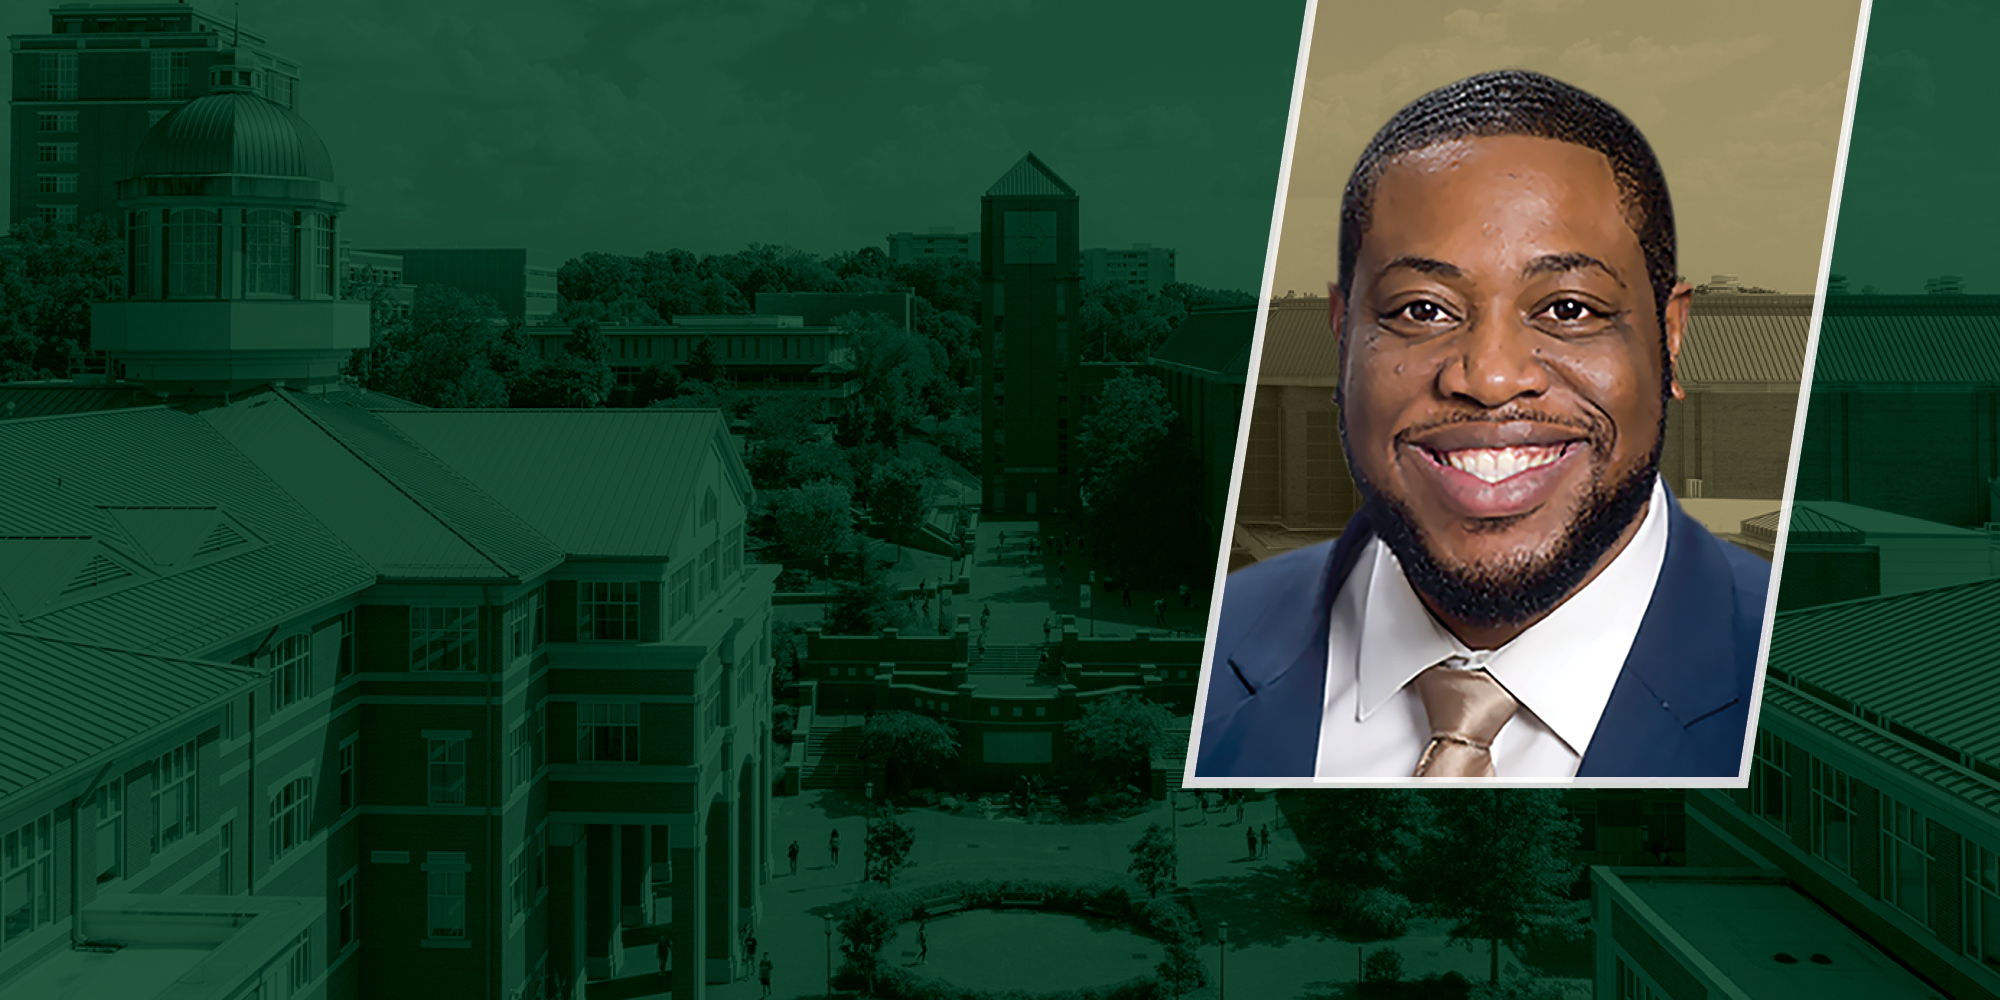 Dr. Brandon L. Wolfe will join UNC Charlotte on Nov. 1, 2021, as the University's inaugural associate vice chancellor for diversity and inclusion and chief diversity officer (CDO).